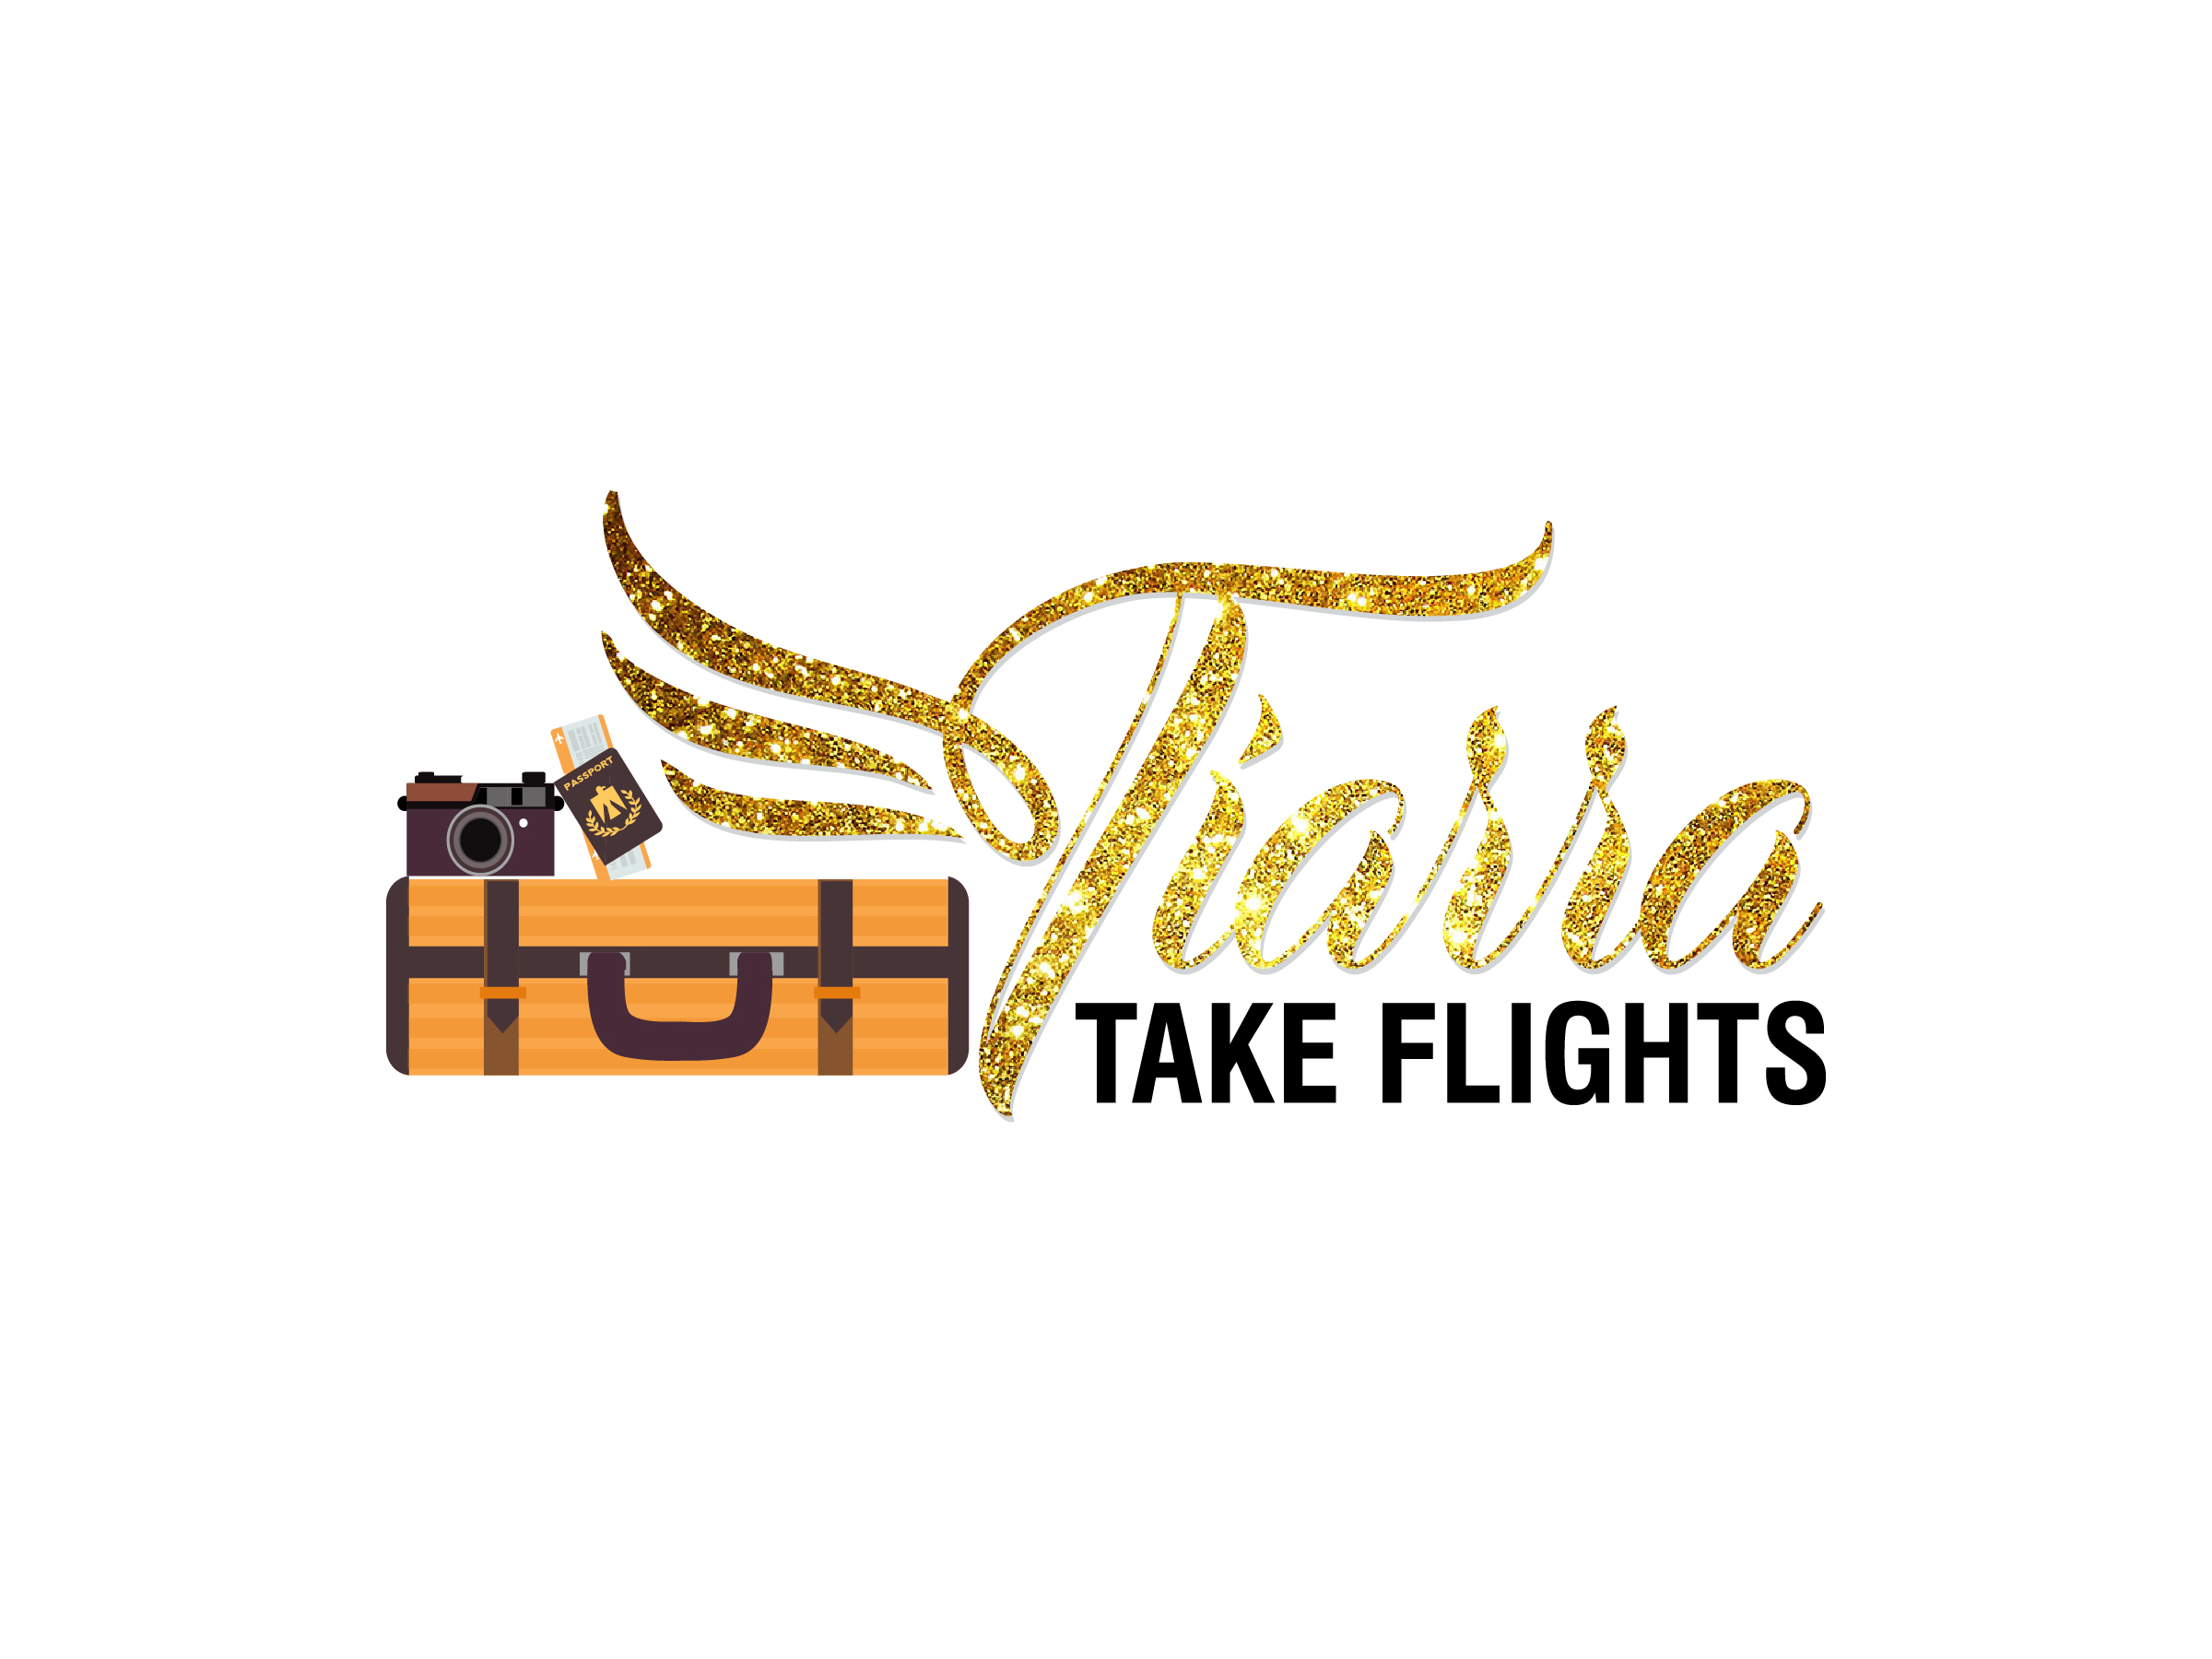 Tiarra Take Flights